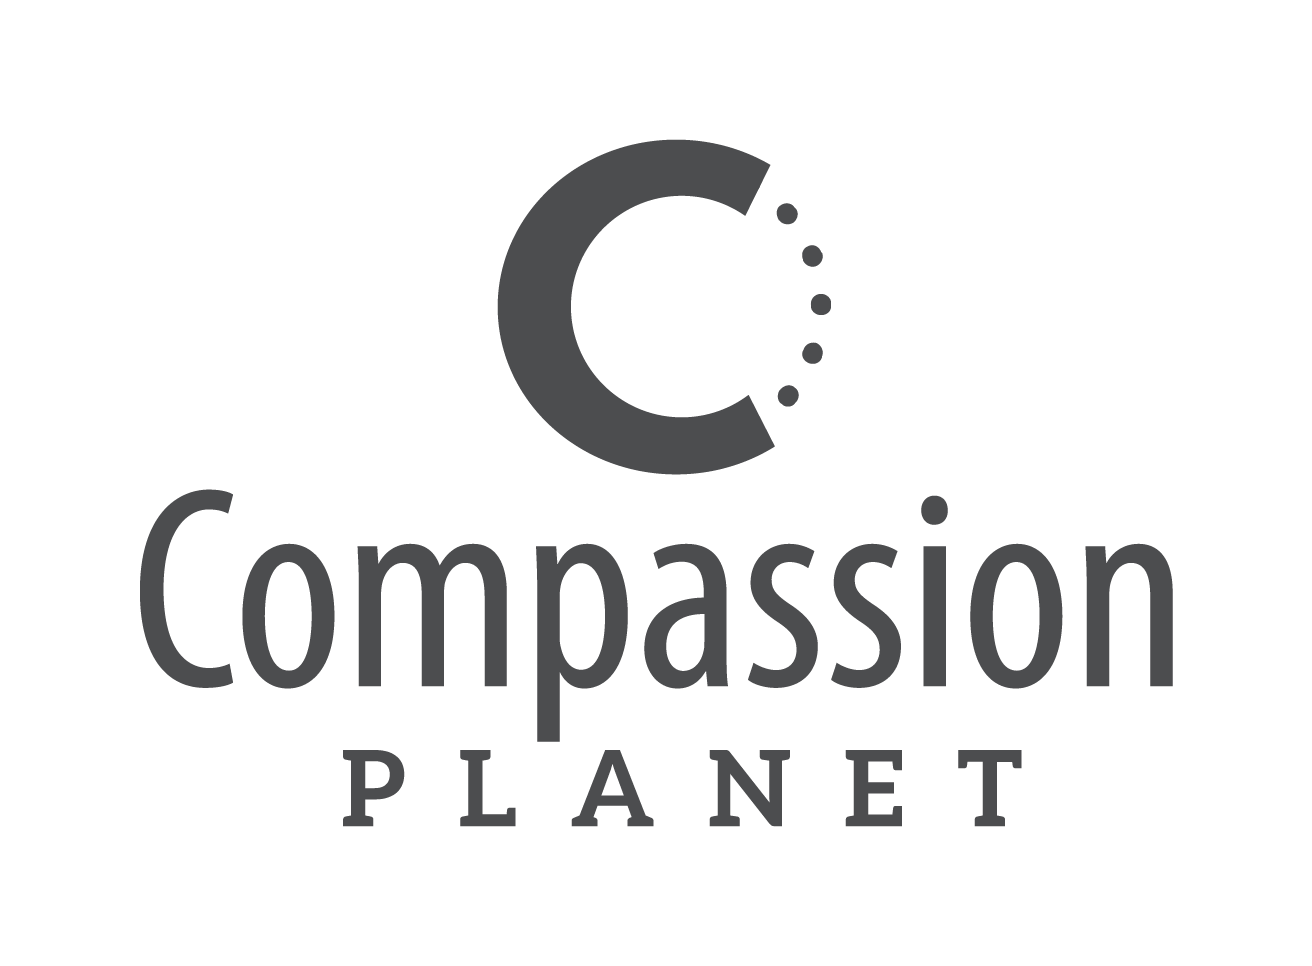 CompassionPlanet_Gray.png